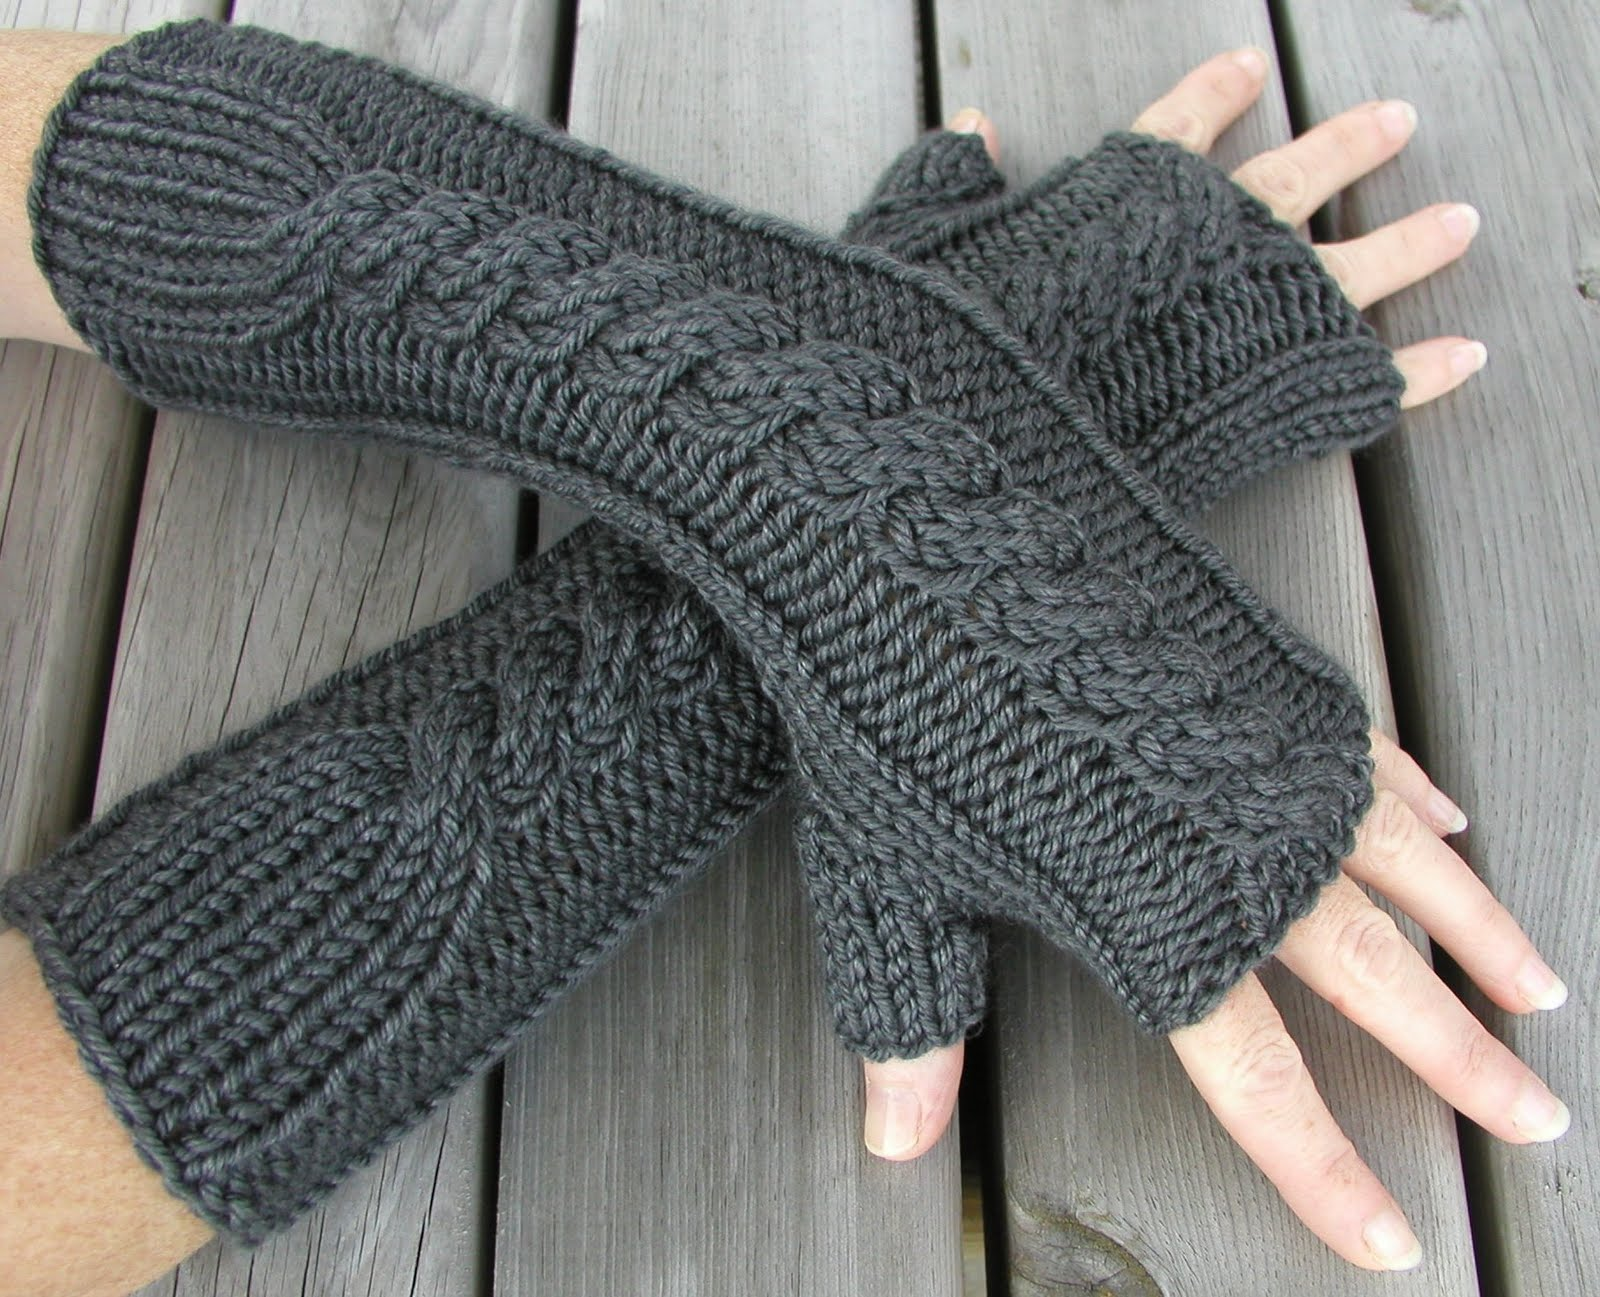 Knit Glove Pattern : Hand Knitted Things Patterns